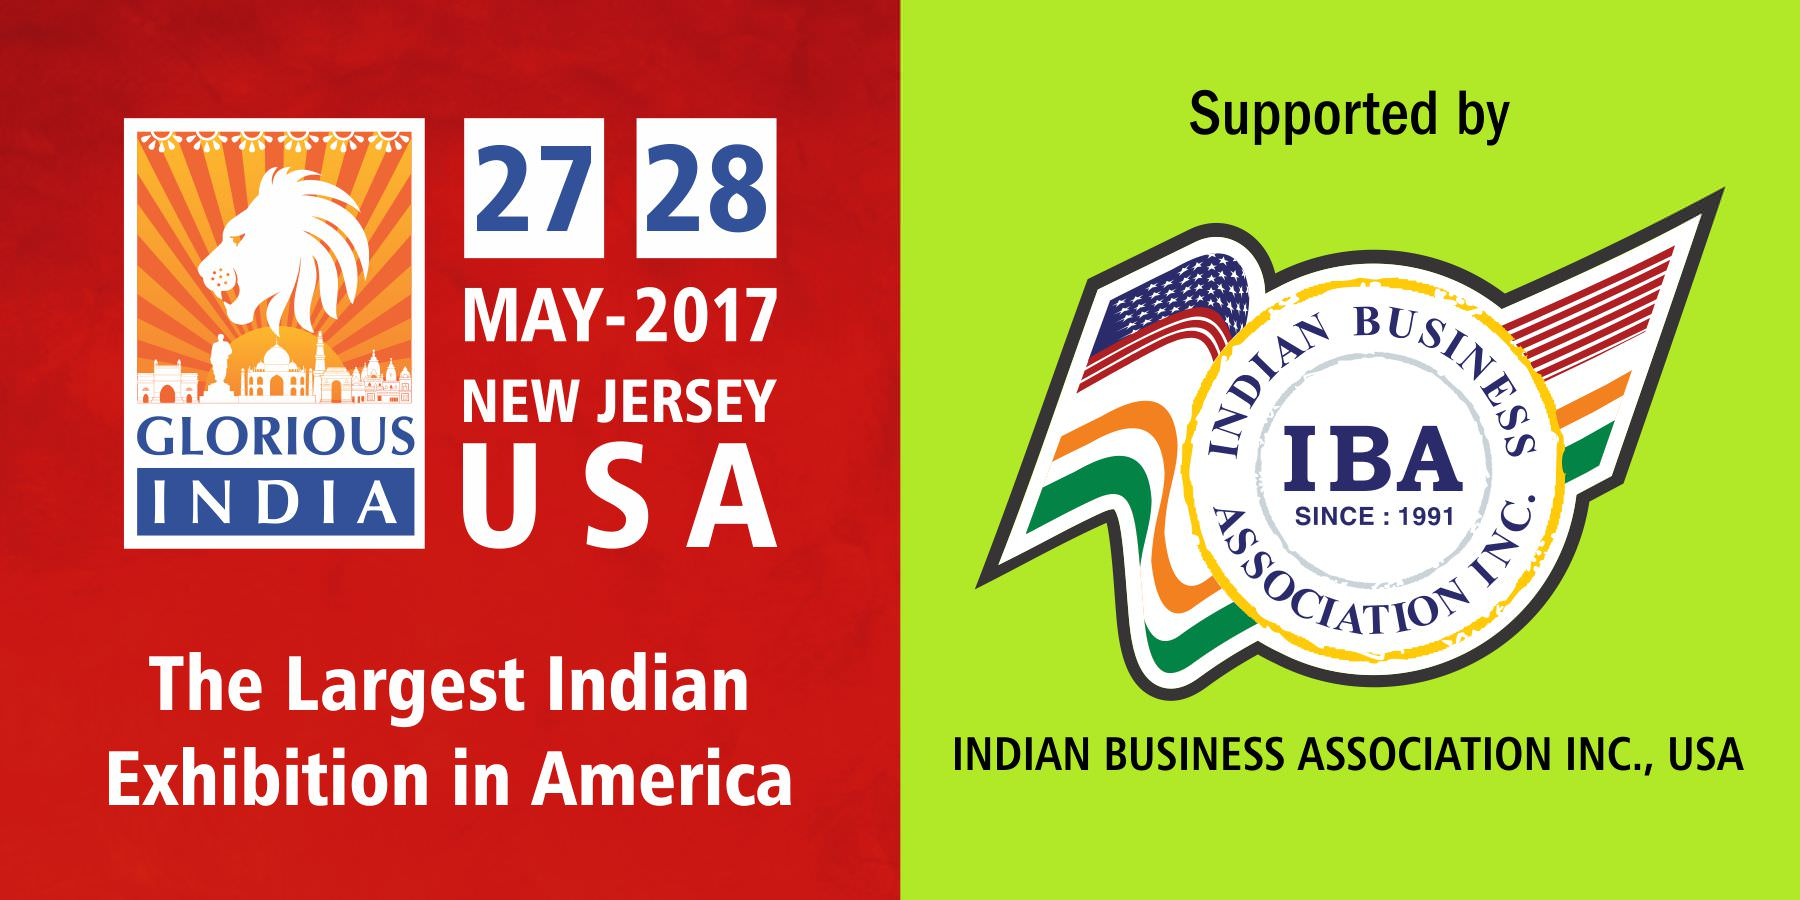 Glorious India Expo - Indian Business Association (IBA)